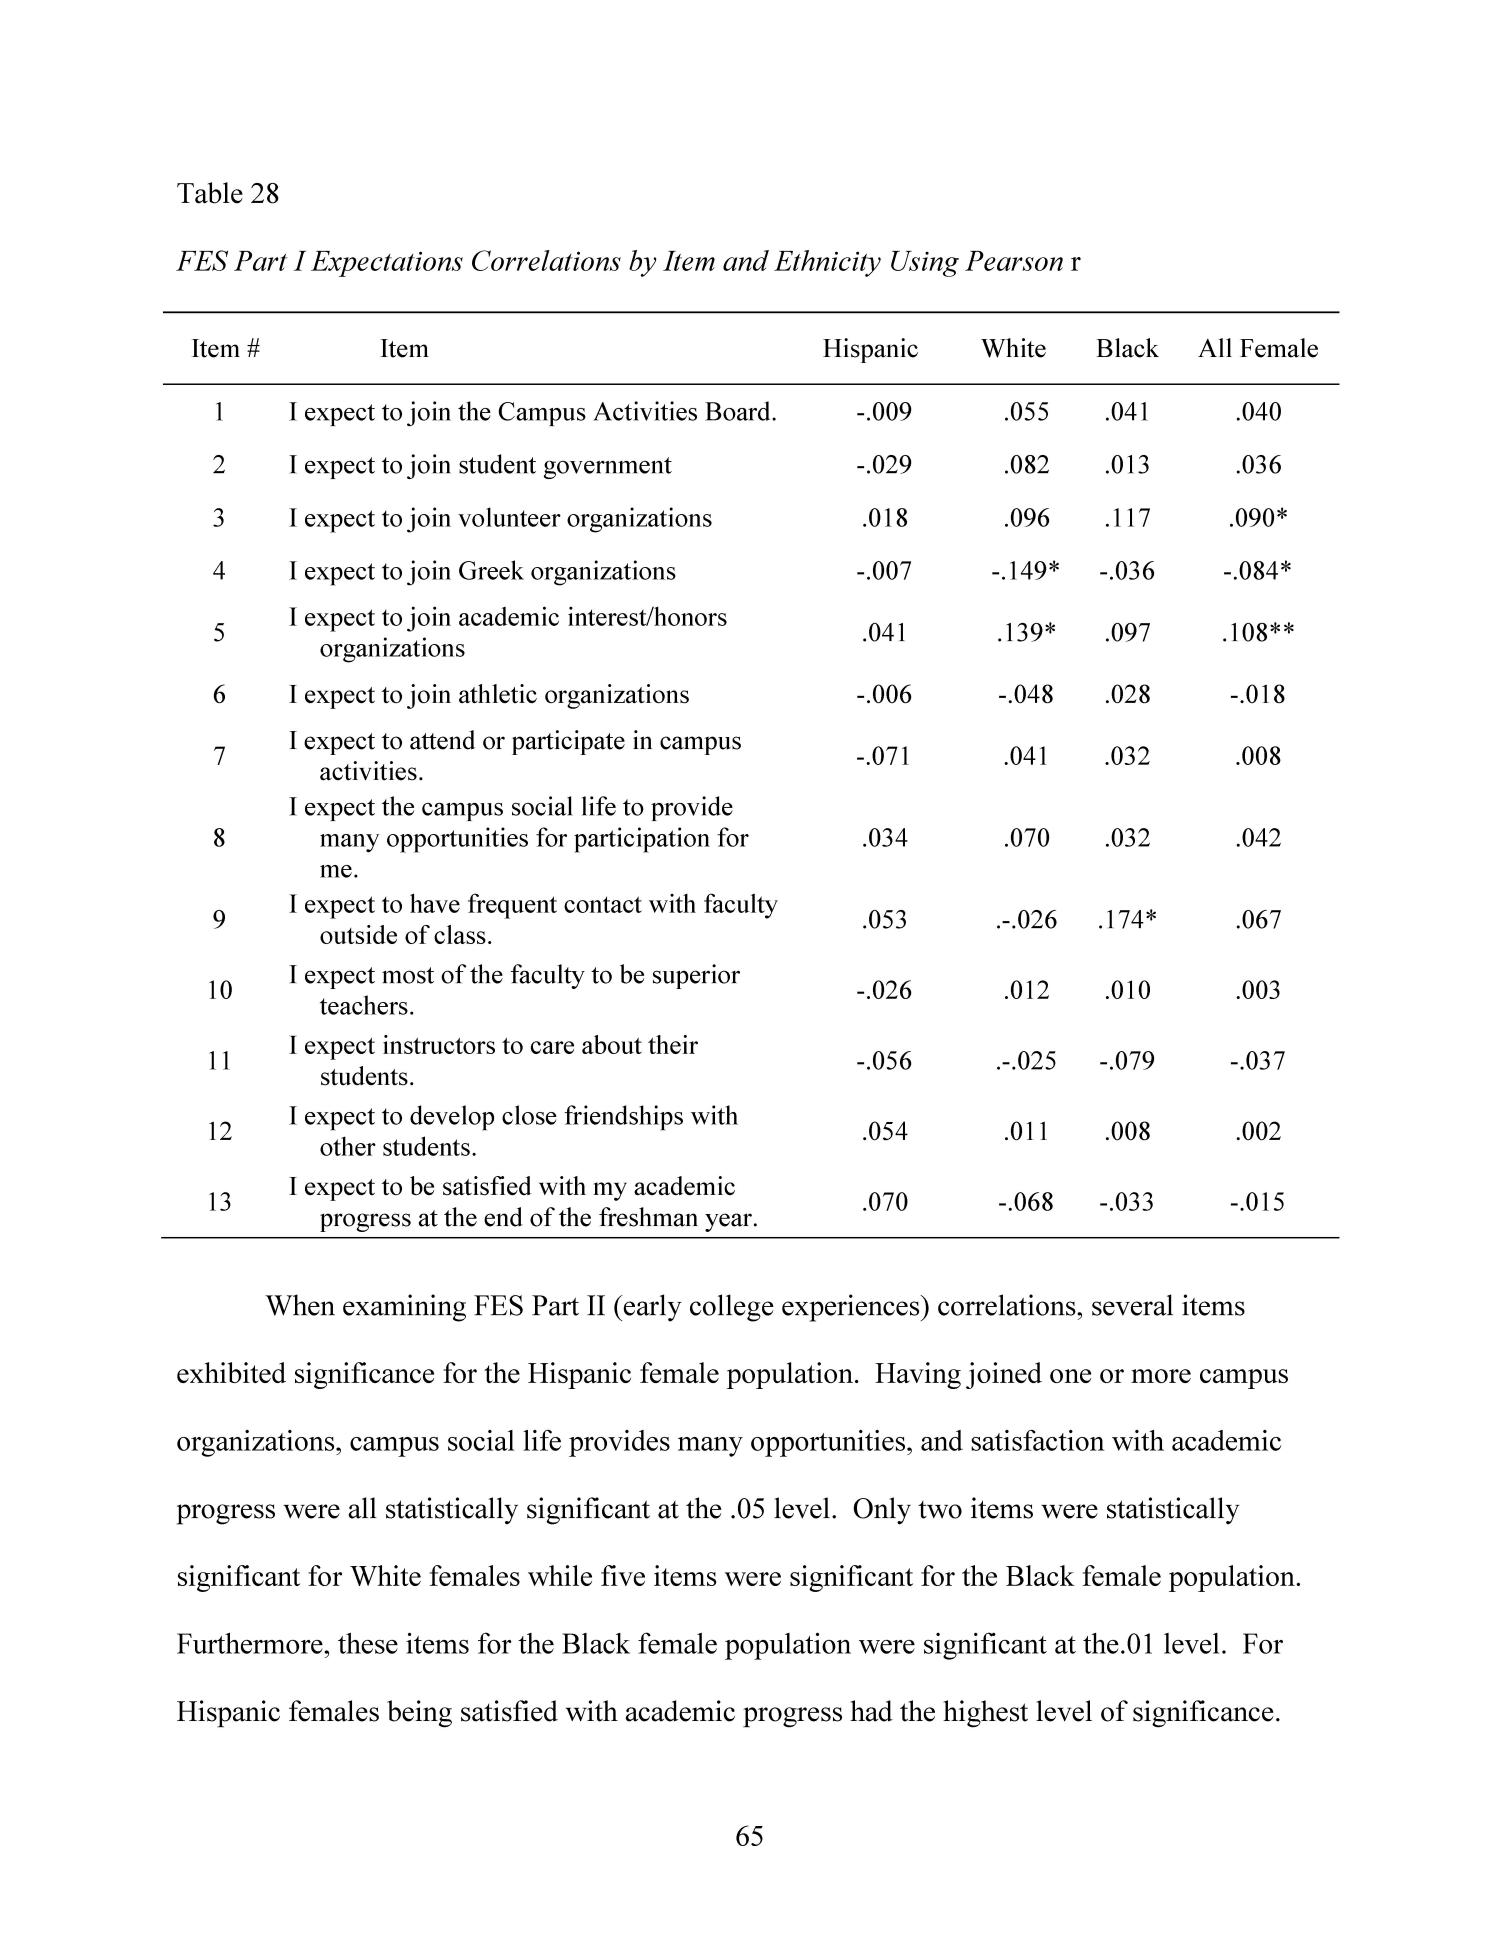 Early Predictors of Early Freshman Year Attrition in Female Hispanic Students                                                                                                      65